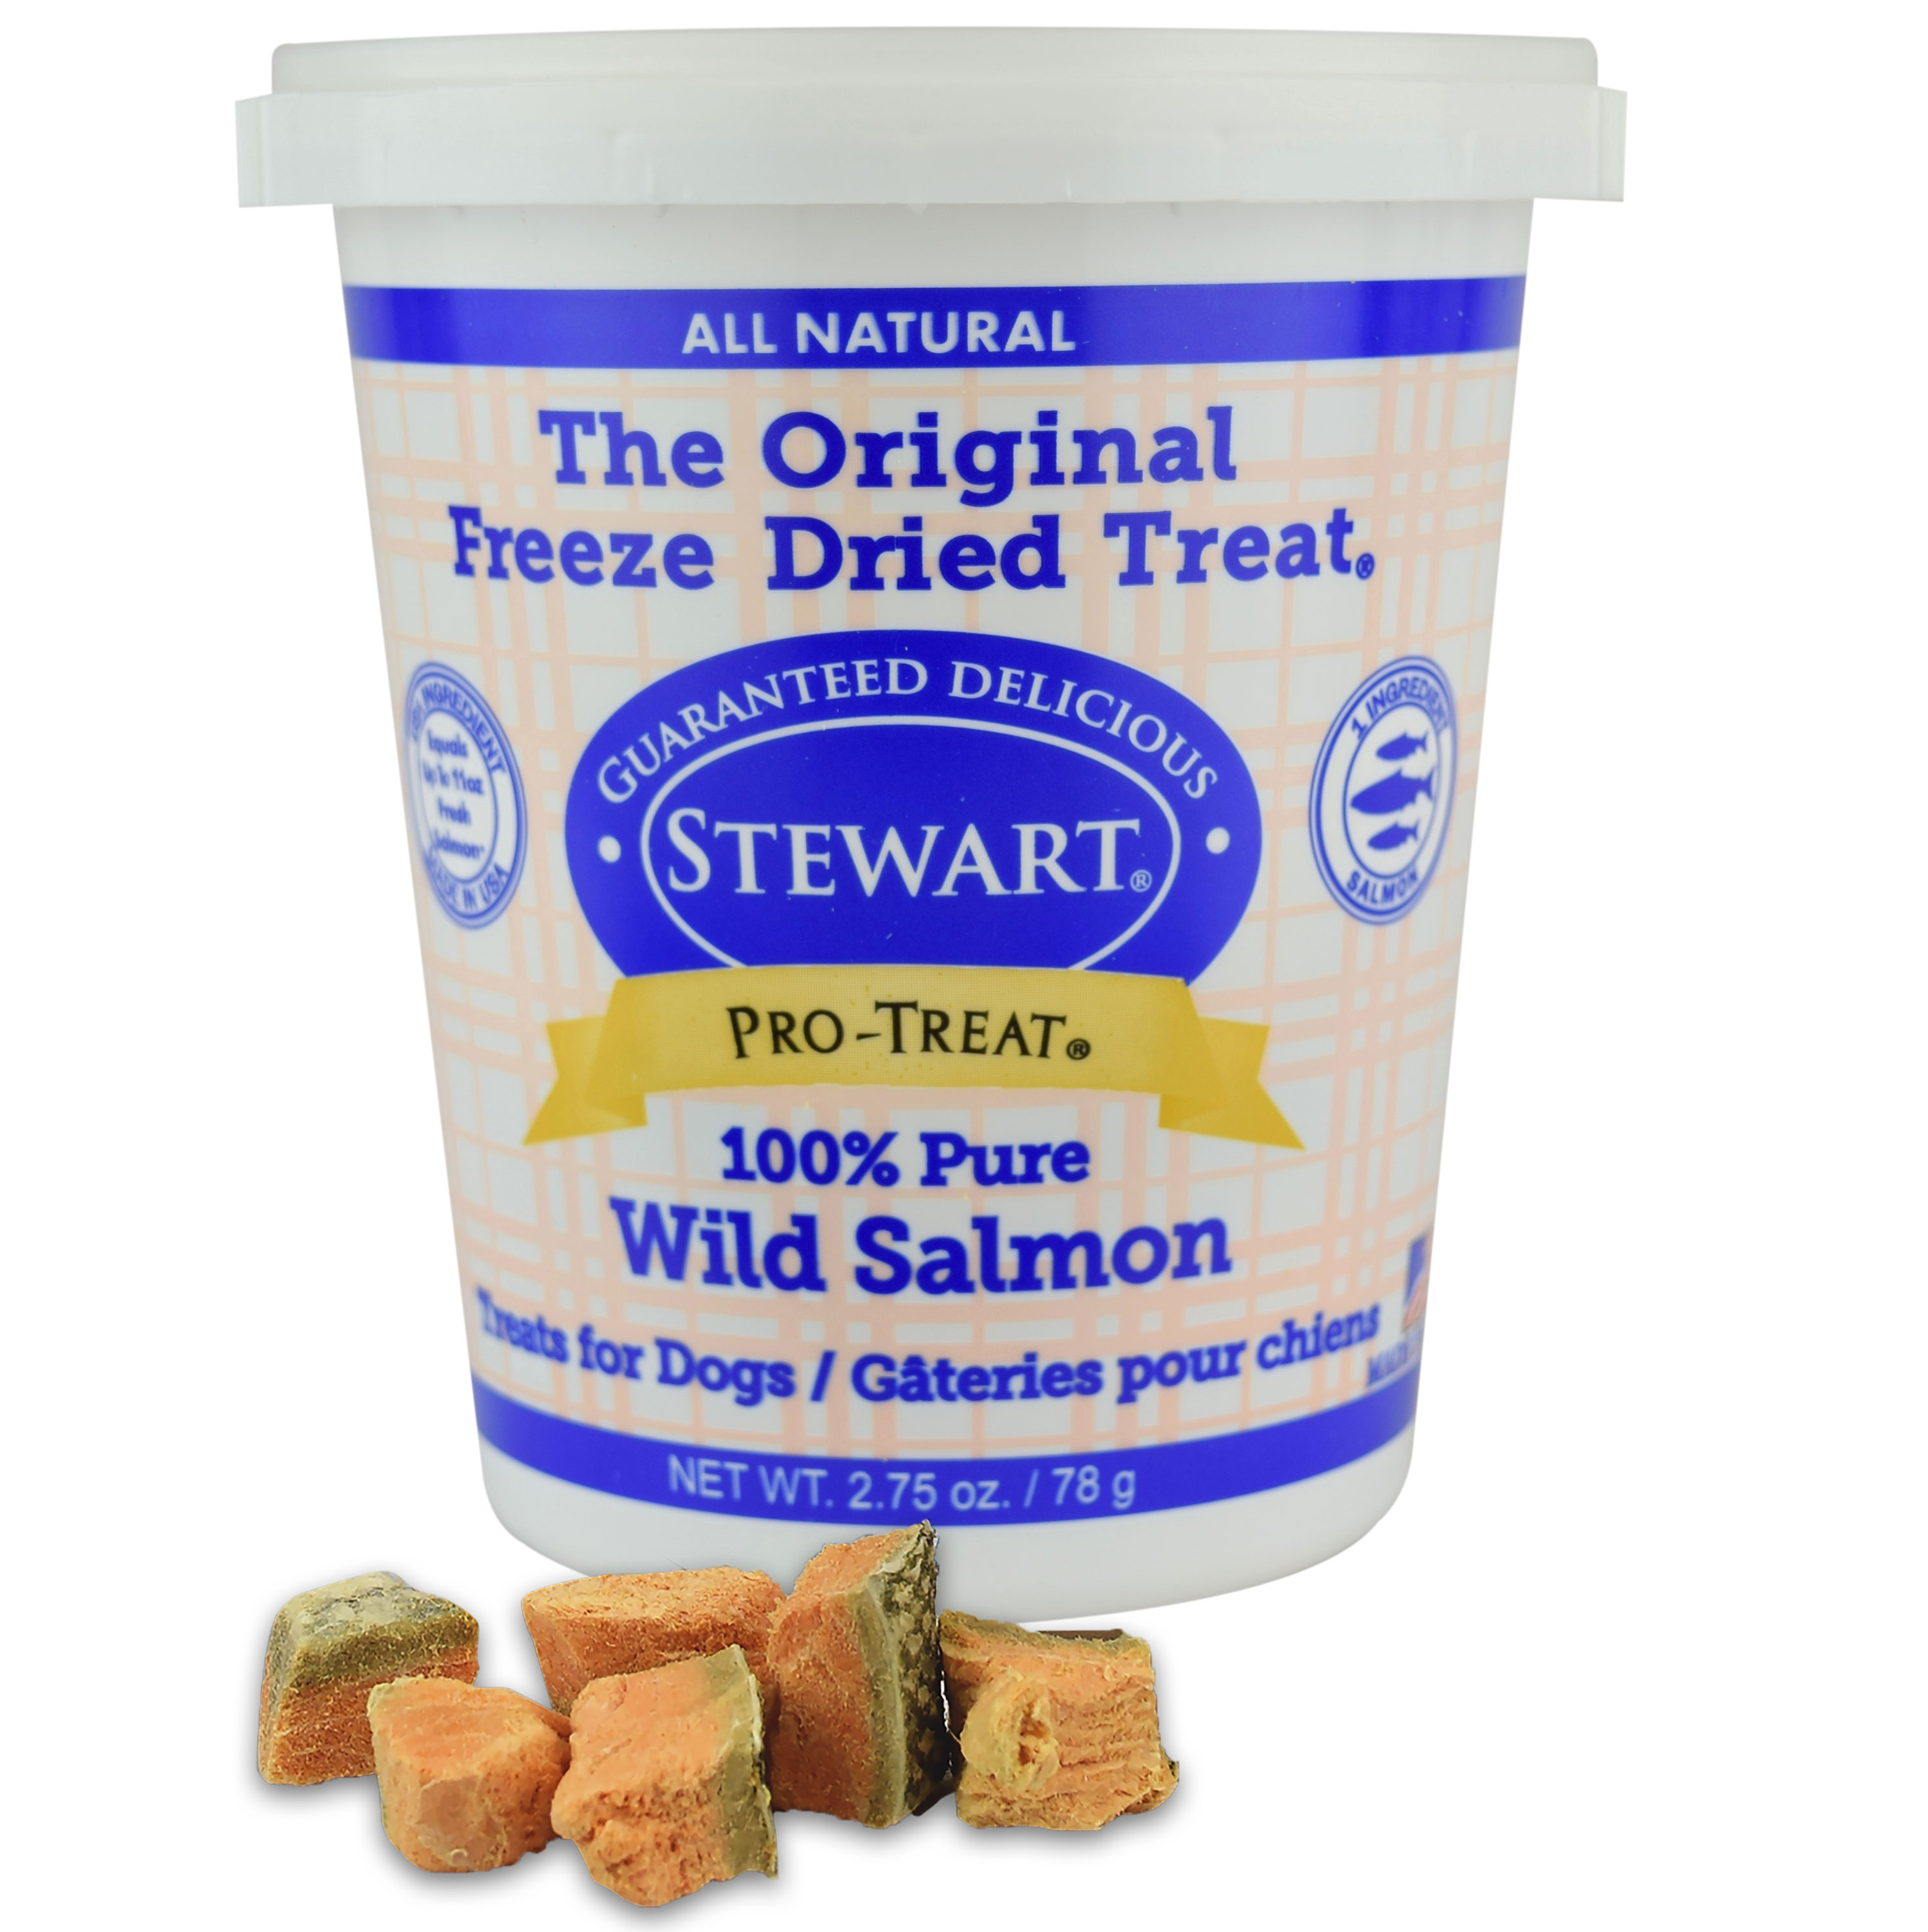 Stewart Freeze Dried Wild Salmon Dog Treats by Pro-Treat, 2.75 oz. Tub